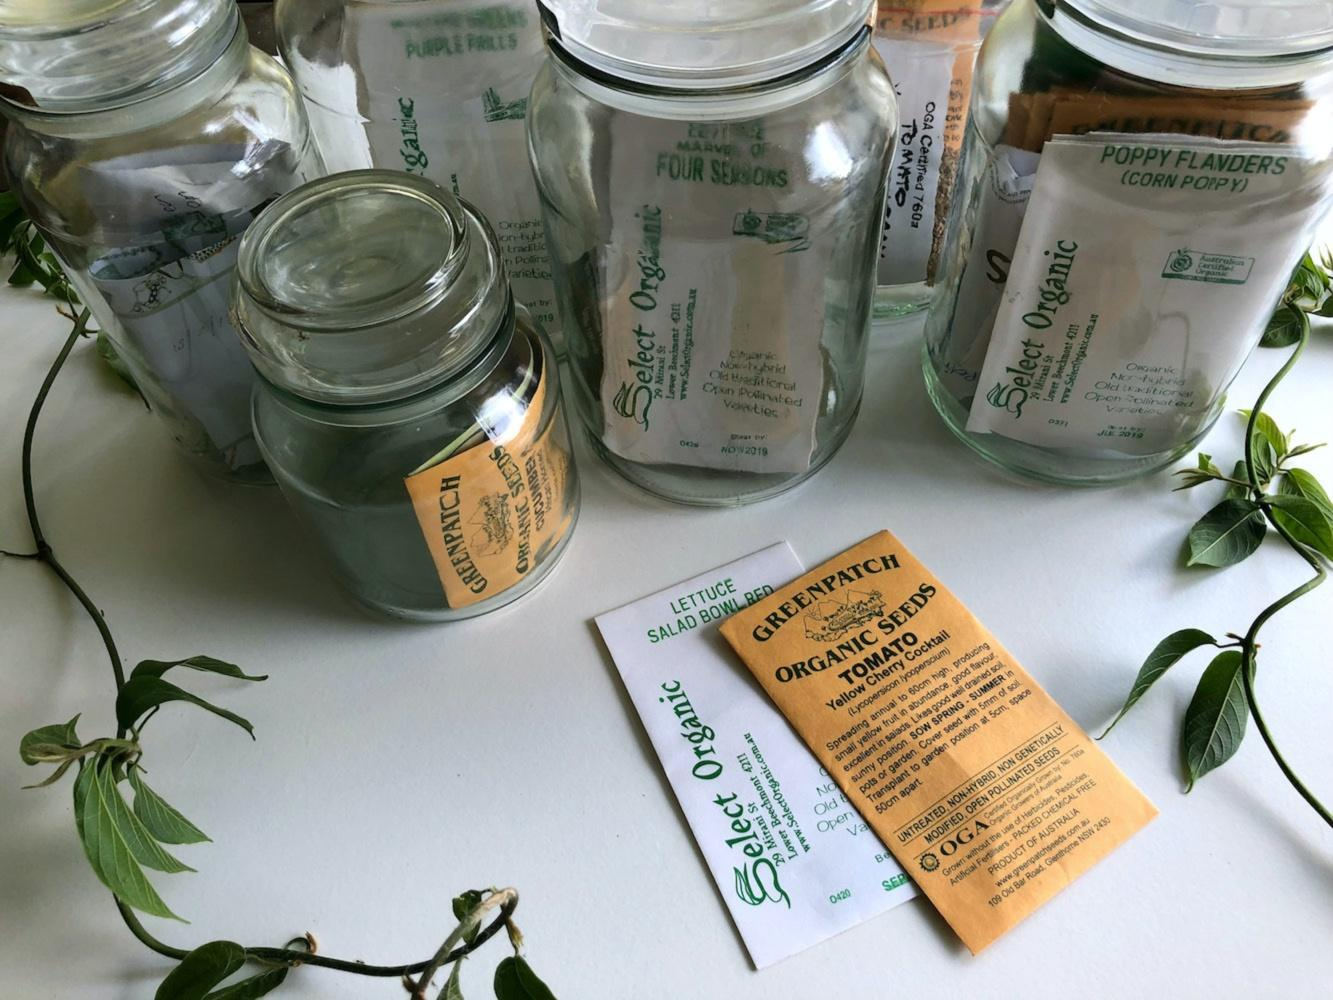 A collection of glass jars filled with vintage-looking paper seed packets. Two packets are out of the jars, one reads 'Greenpatch Organc Seeds Tomato' and the other reads 'Select Organic Lettuce Salad Bowl Red. Be inspired to grow your own in a victory garden at home.